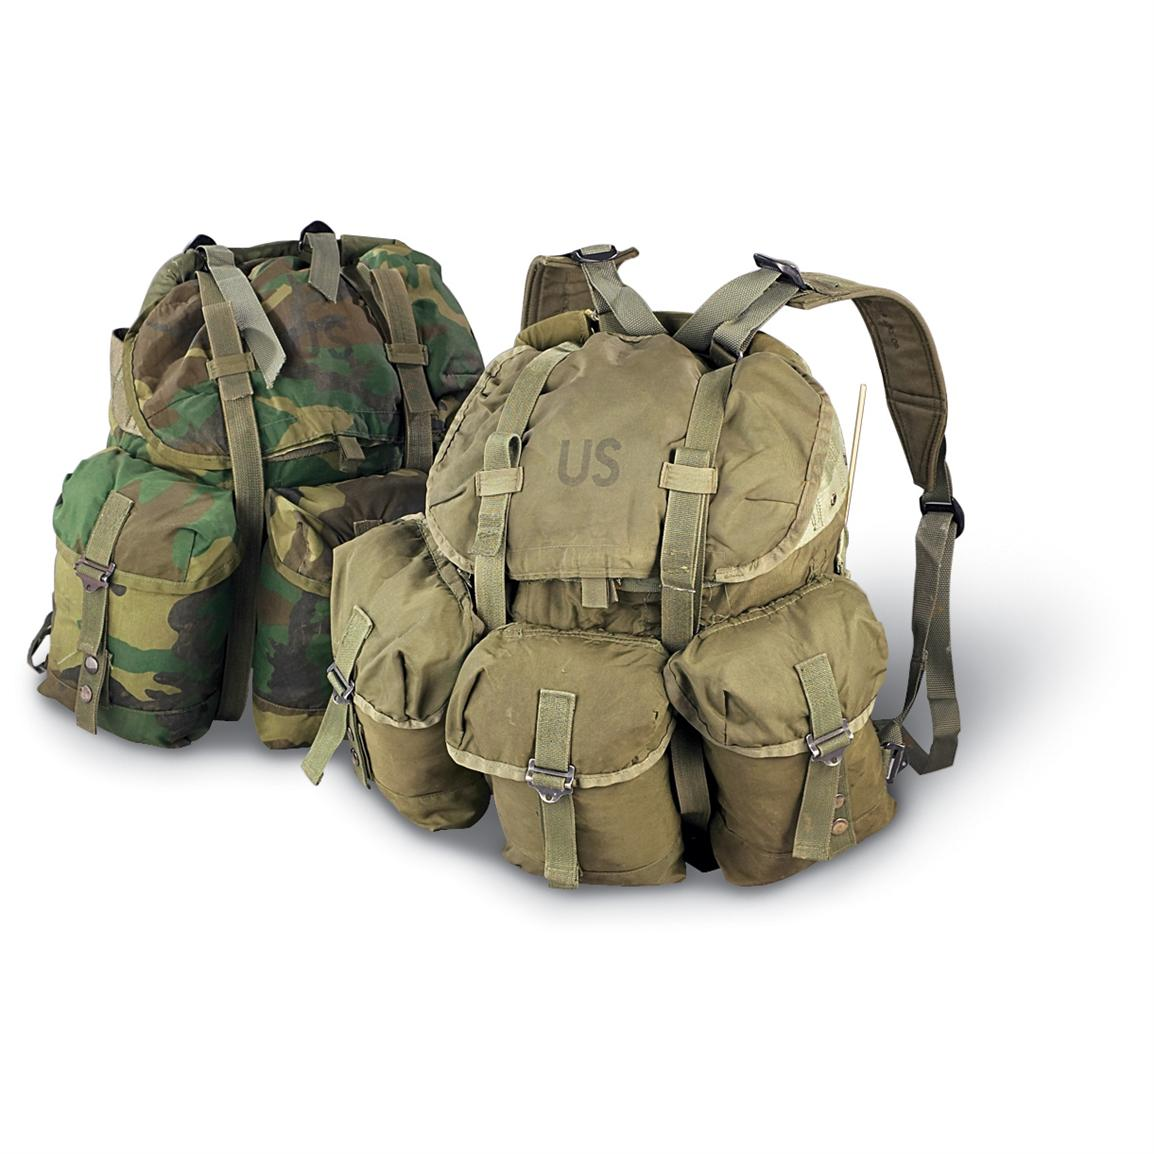 Used U.S. Military ALICE Pack with Shoulder Straps - 108027 ...